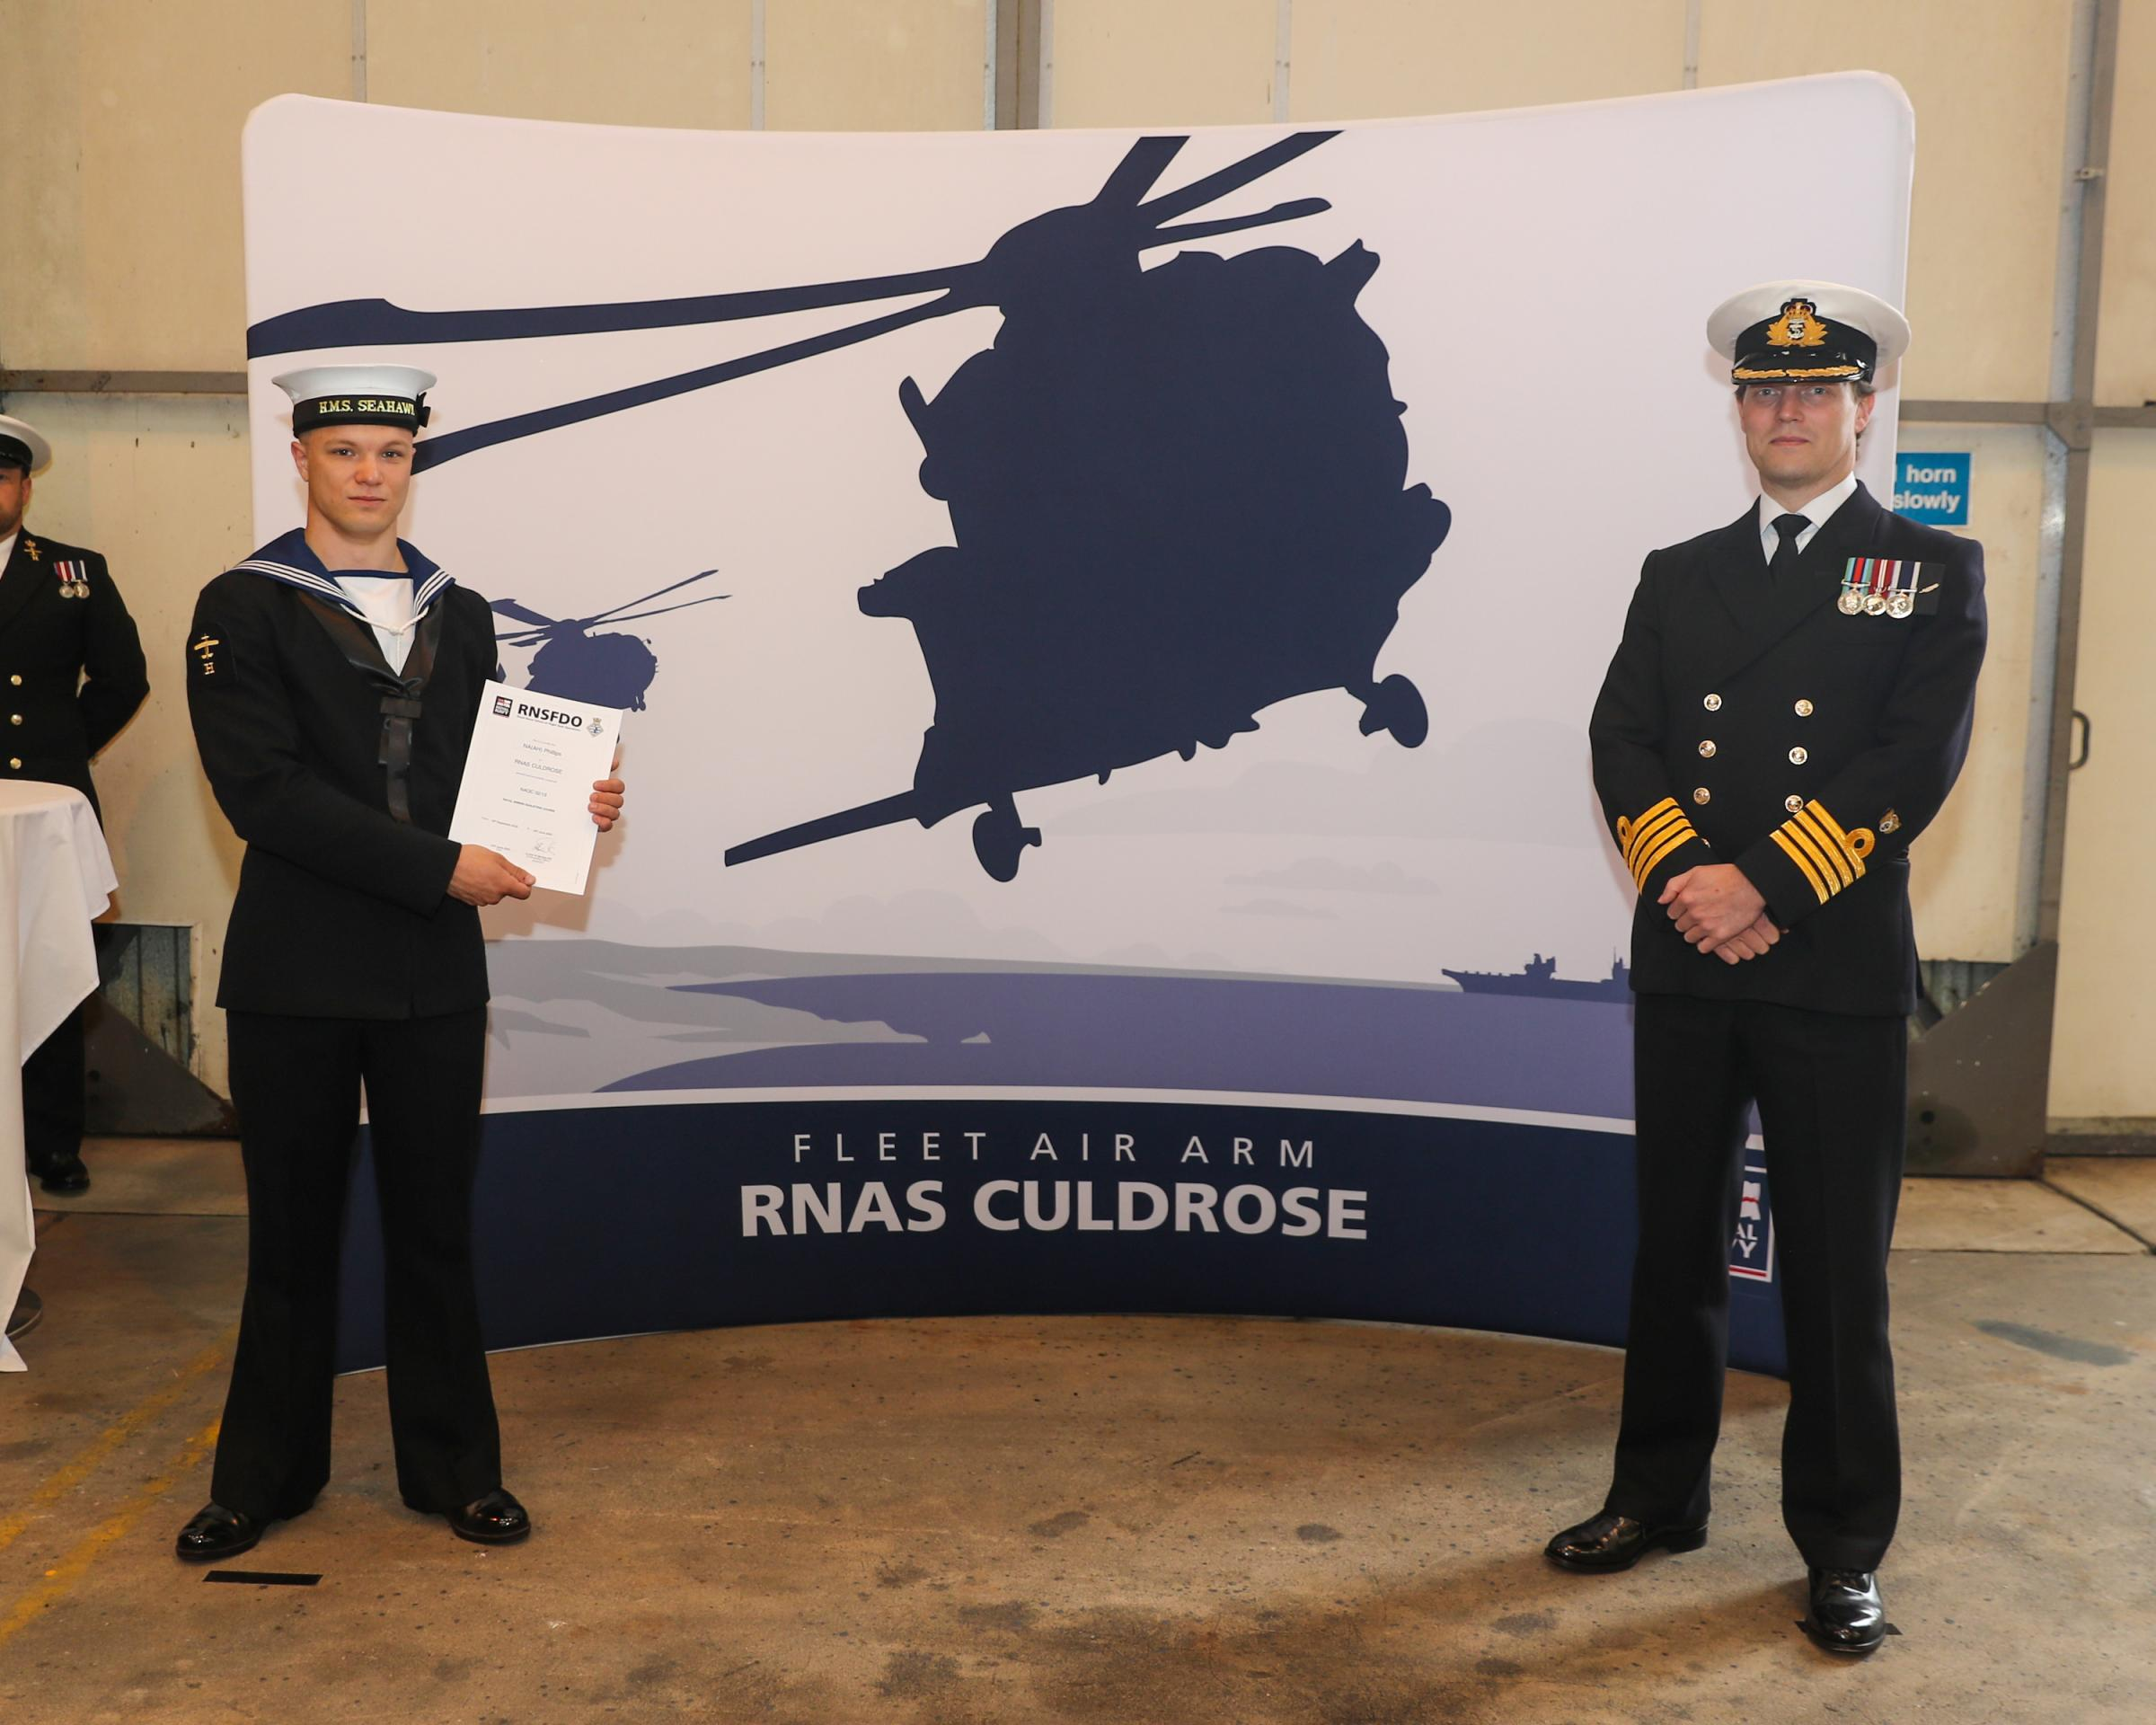 A Royal Navy sailor from Weymouth joins the Commando Helicopter Force as an aircraft handler